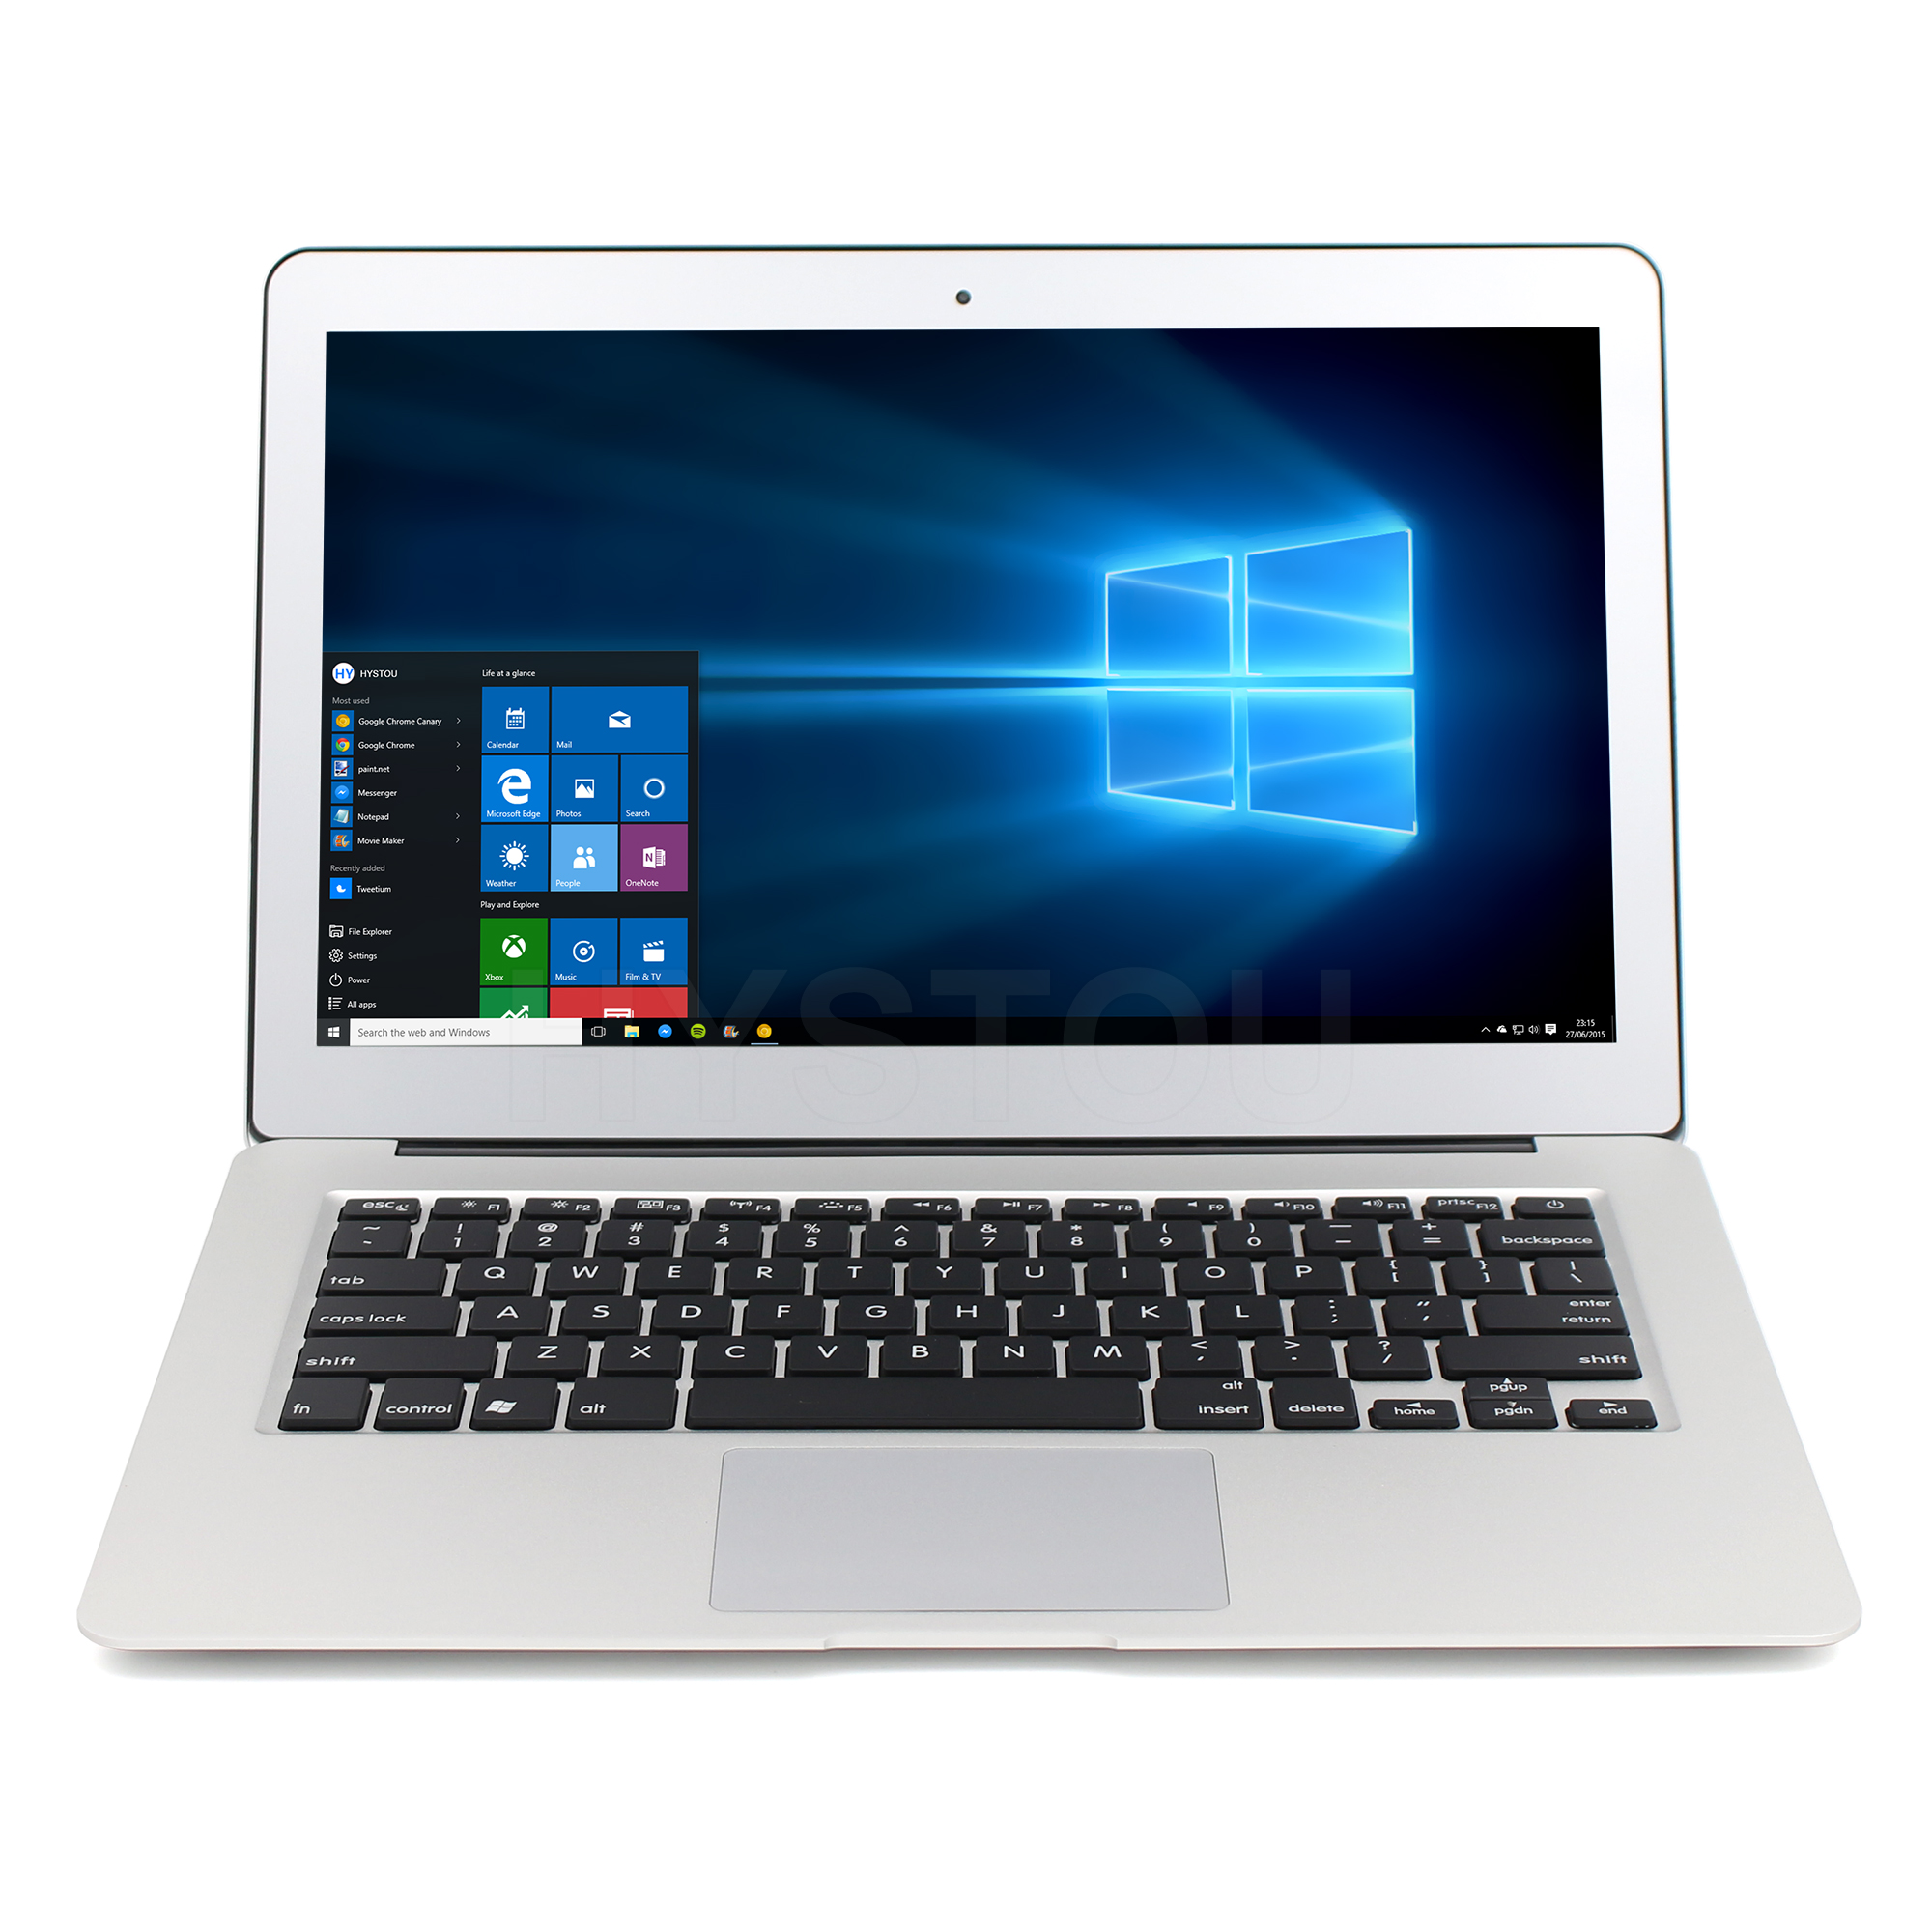 Notebook Computer <strong>laptop</strong> i5 Ultra Thin <strong>Laptop</strong> with i5 5200u 4G RAM 128g SSD 13.3inch 4K Resolution